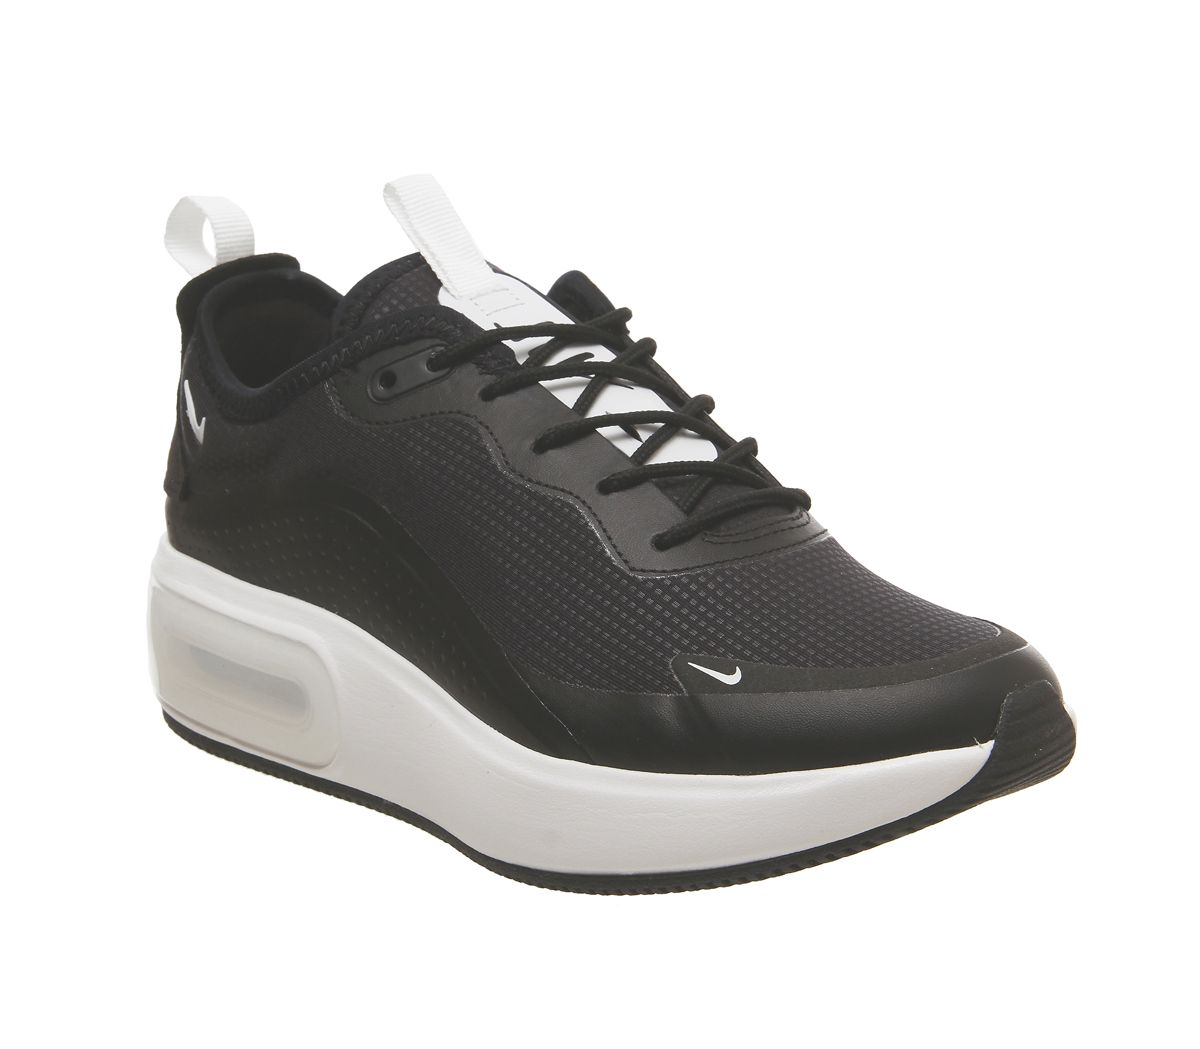 promo code d3a0d 50a19 Nike Air Max Dia Trainers Black Summit White F - Hers trainers